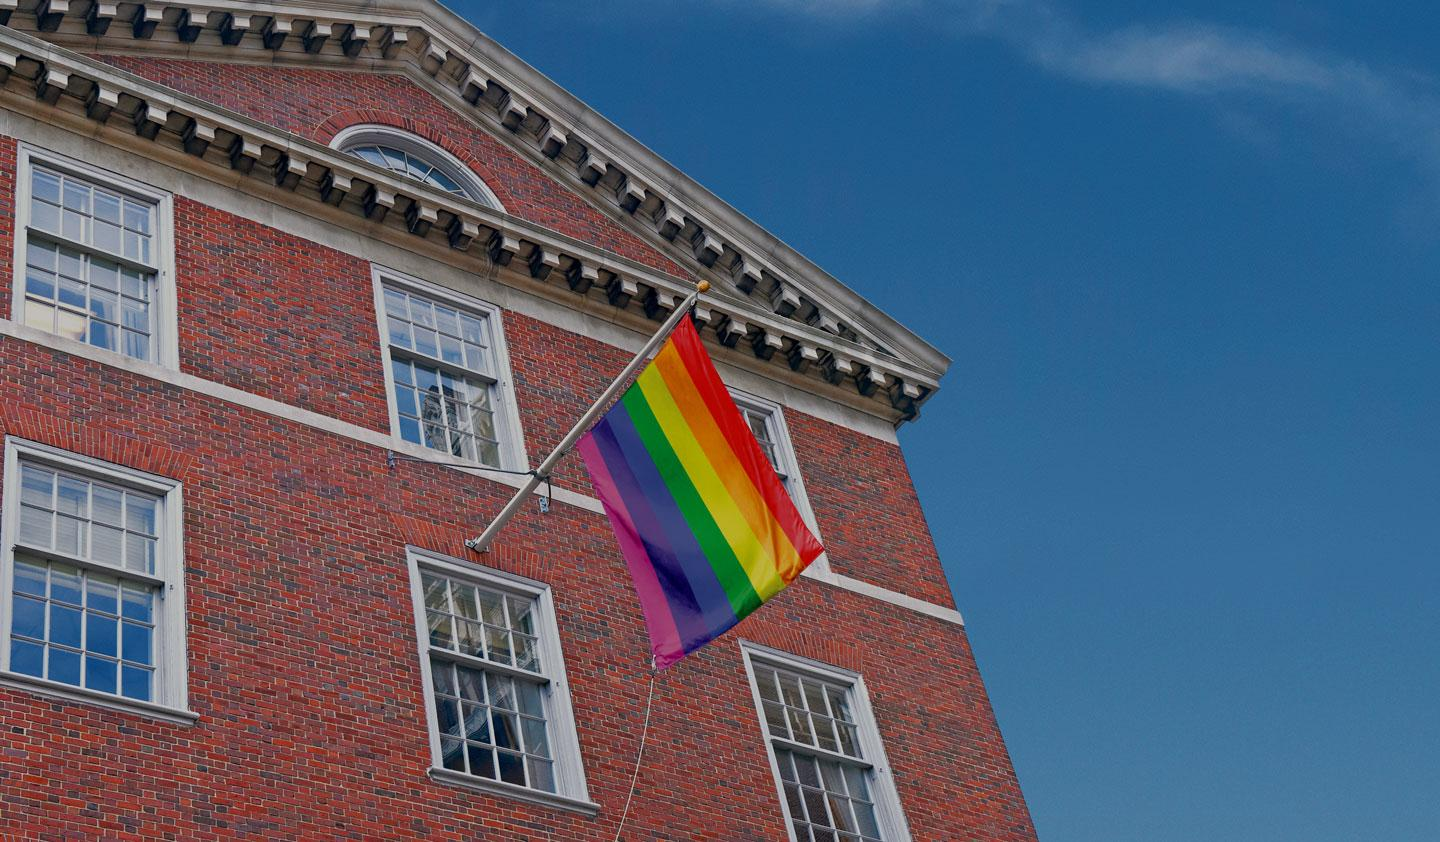 Vanderbilt Hall with a Pride flag